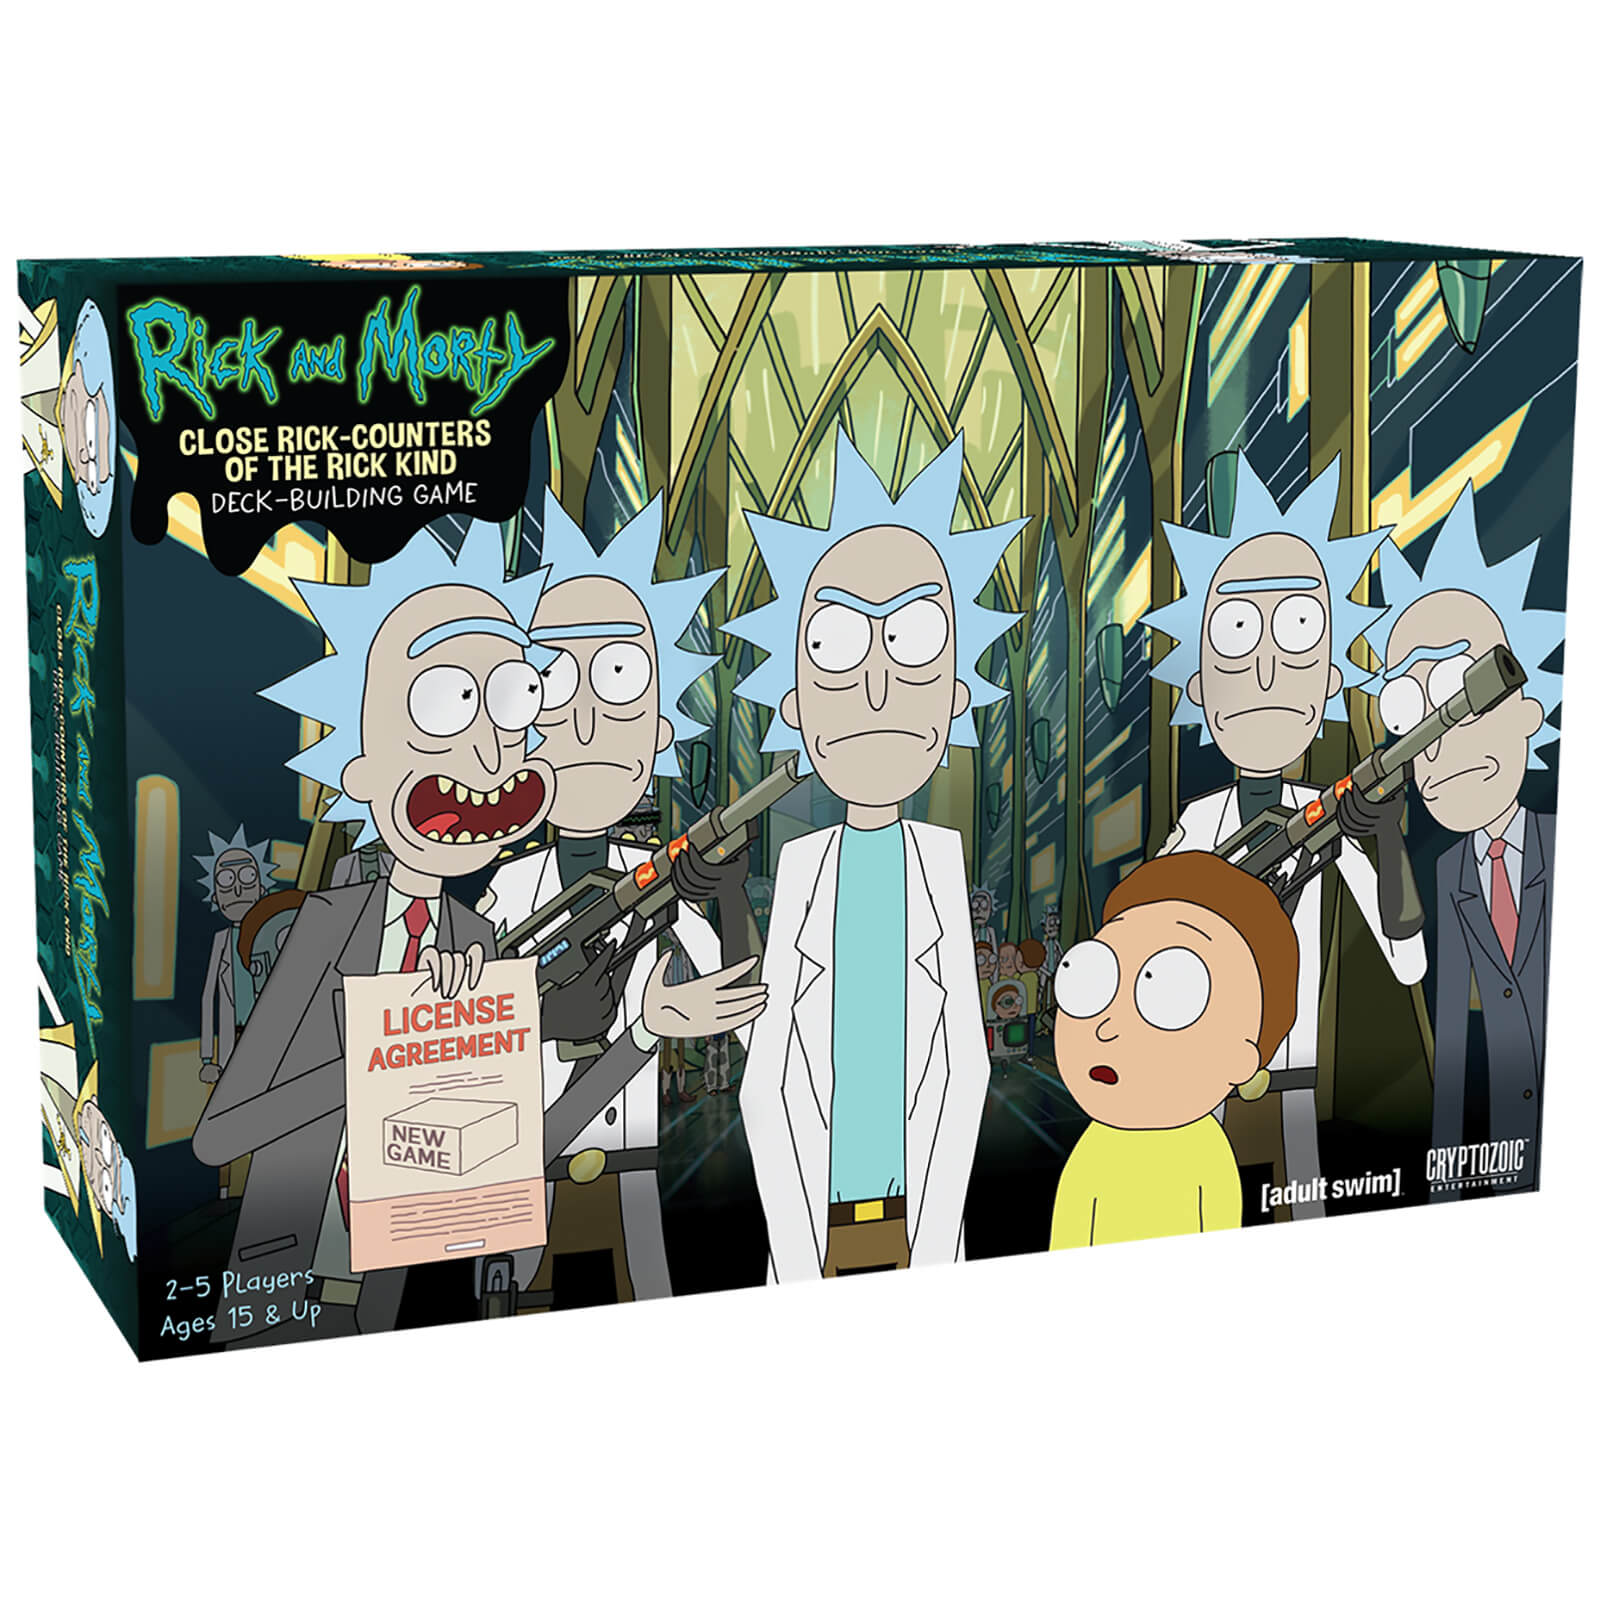 Image of Close Rick Counters of the Rick Kind Deck Building: Rick and Morty